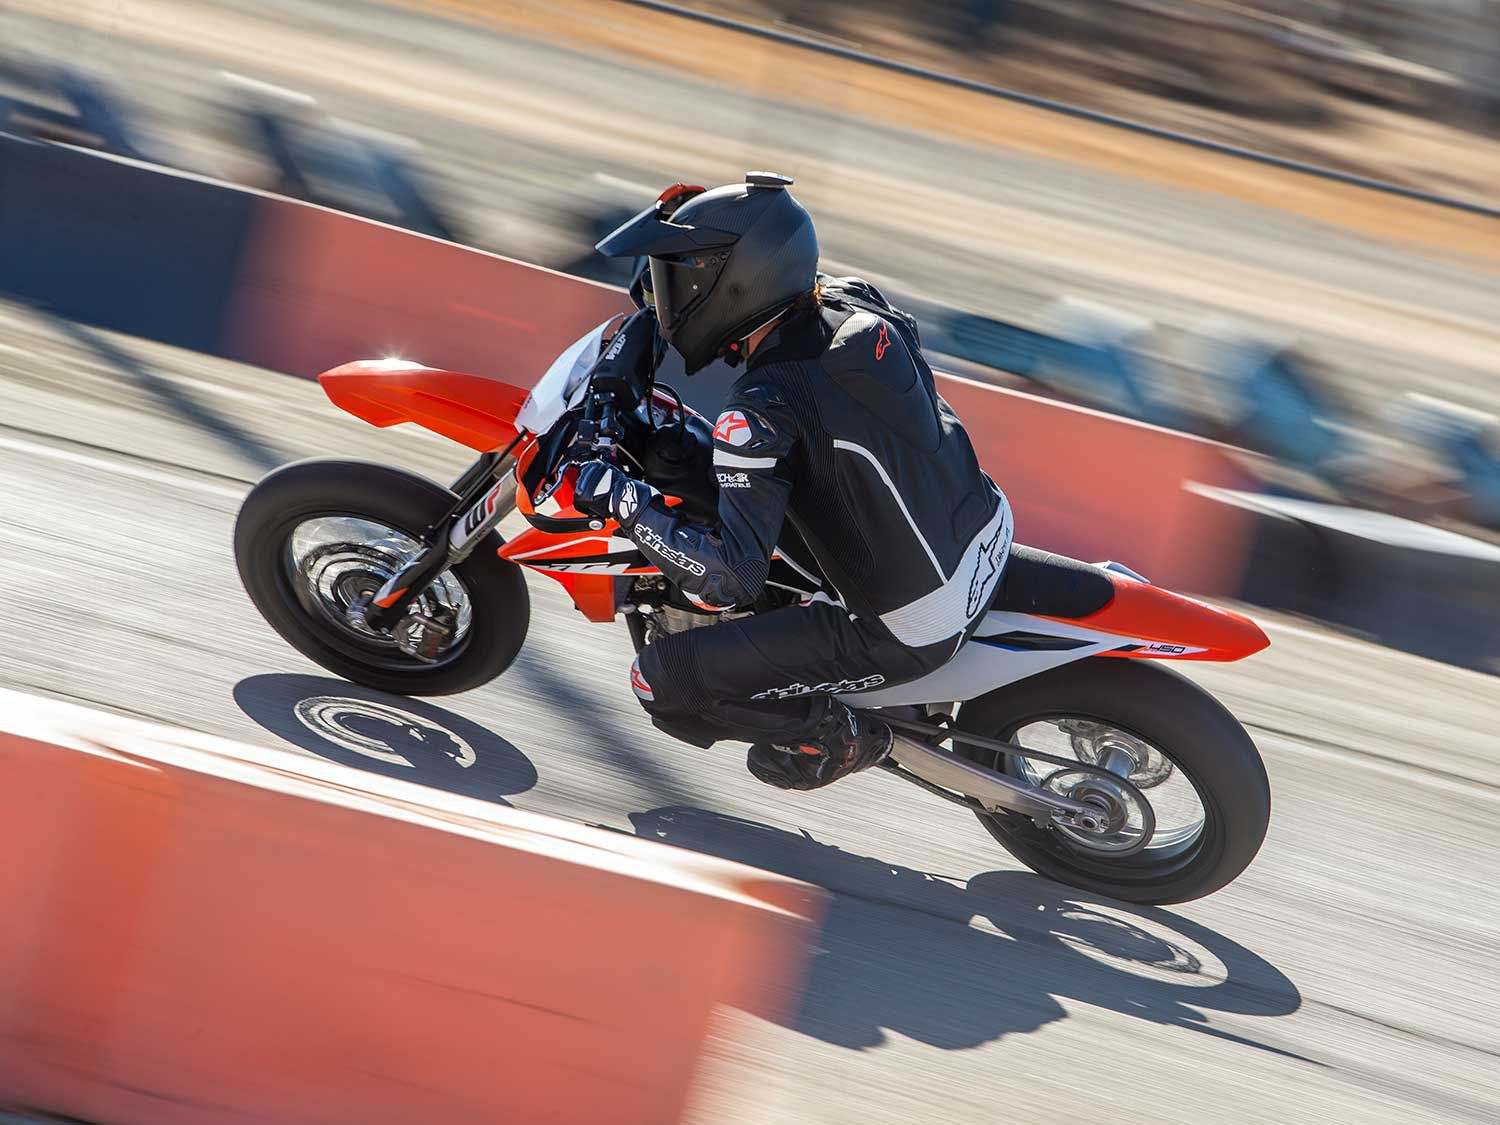 The updated chassis complements the rigidity balance of the Bridgestone Battlax supermoto tires making for a motorcycle with exceptionally high level of grip.